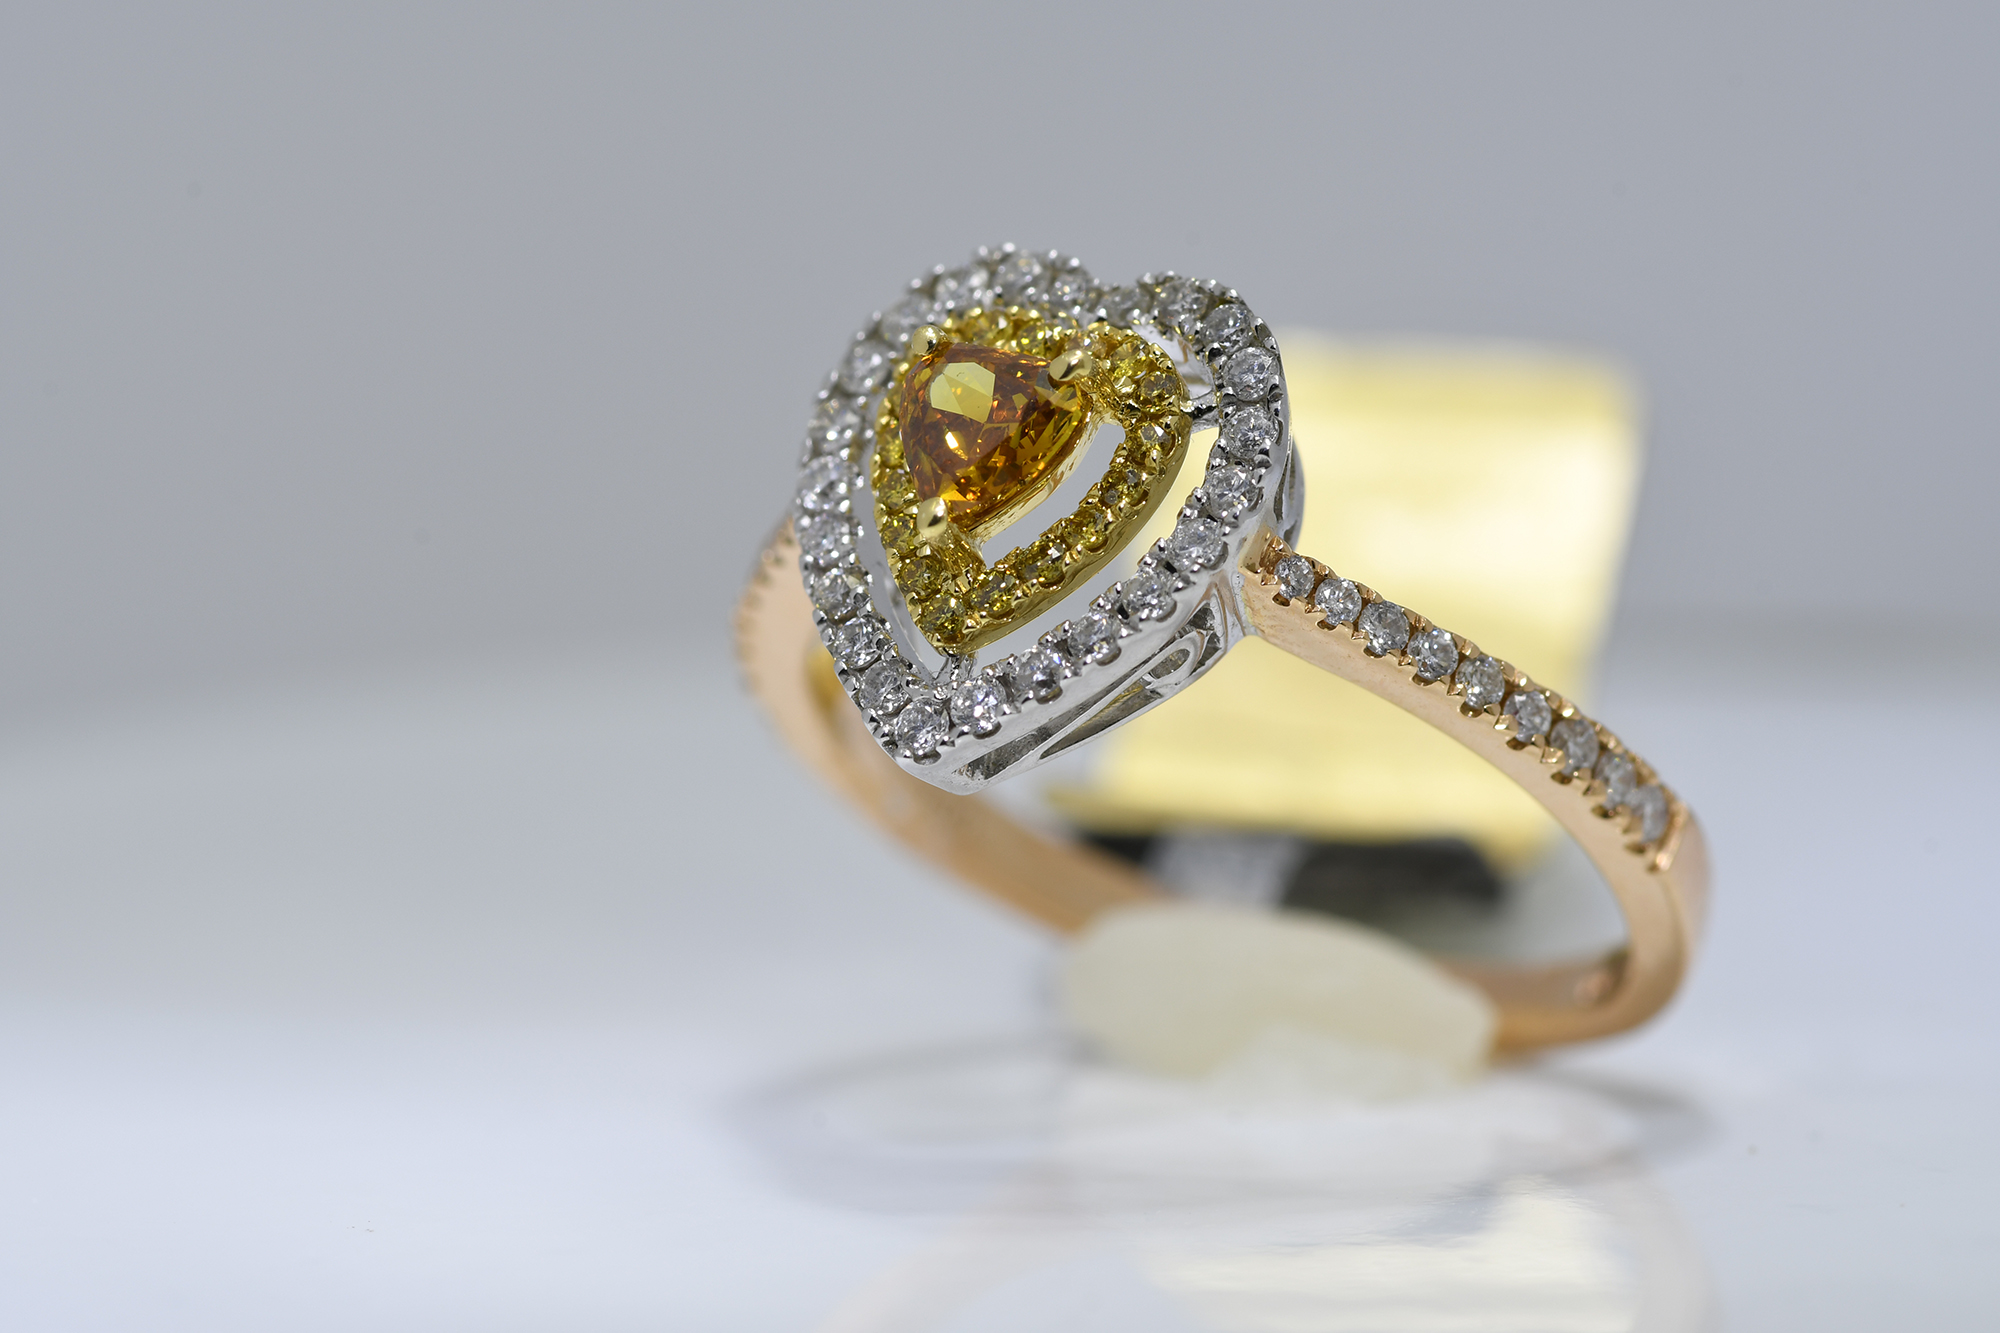 Heart Shaped Cognac Diamond Ring - Image 3 of 3